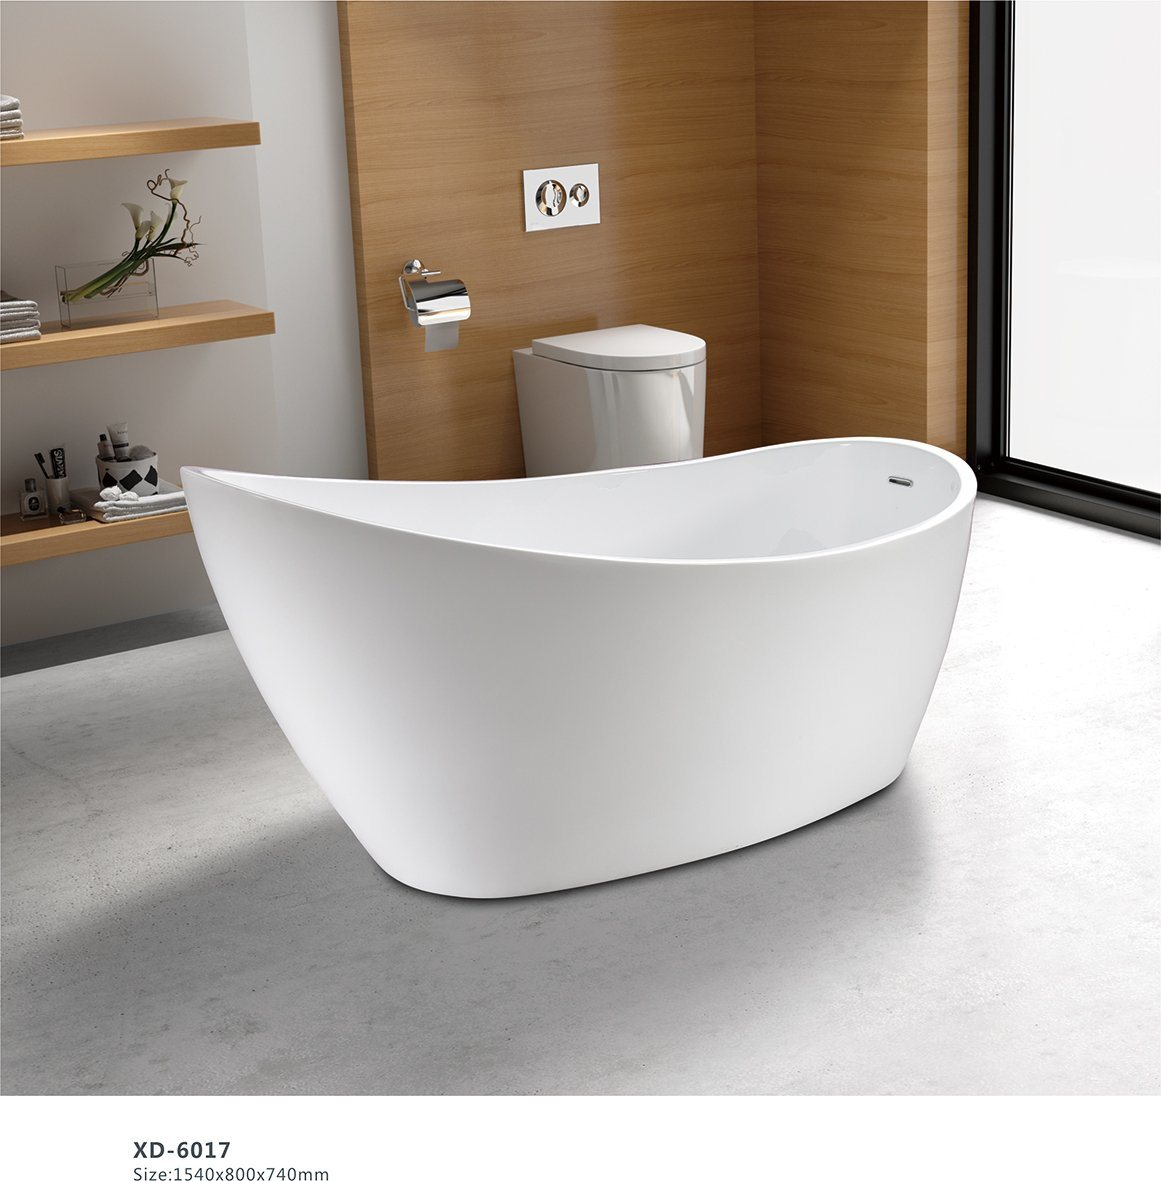 China Luxury Factory Price Cheap Deep Freestanding Bathtub For Sale China Bath Free Standing Bath Taps